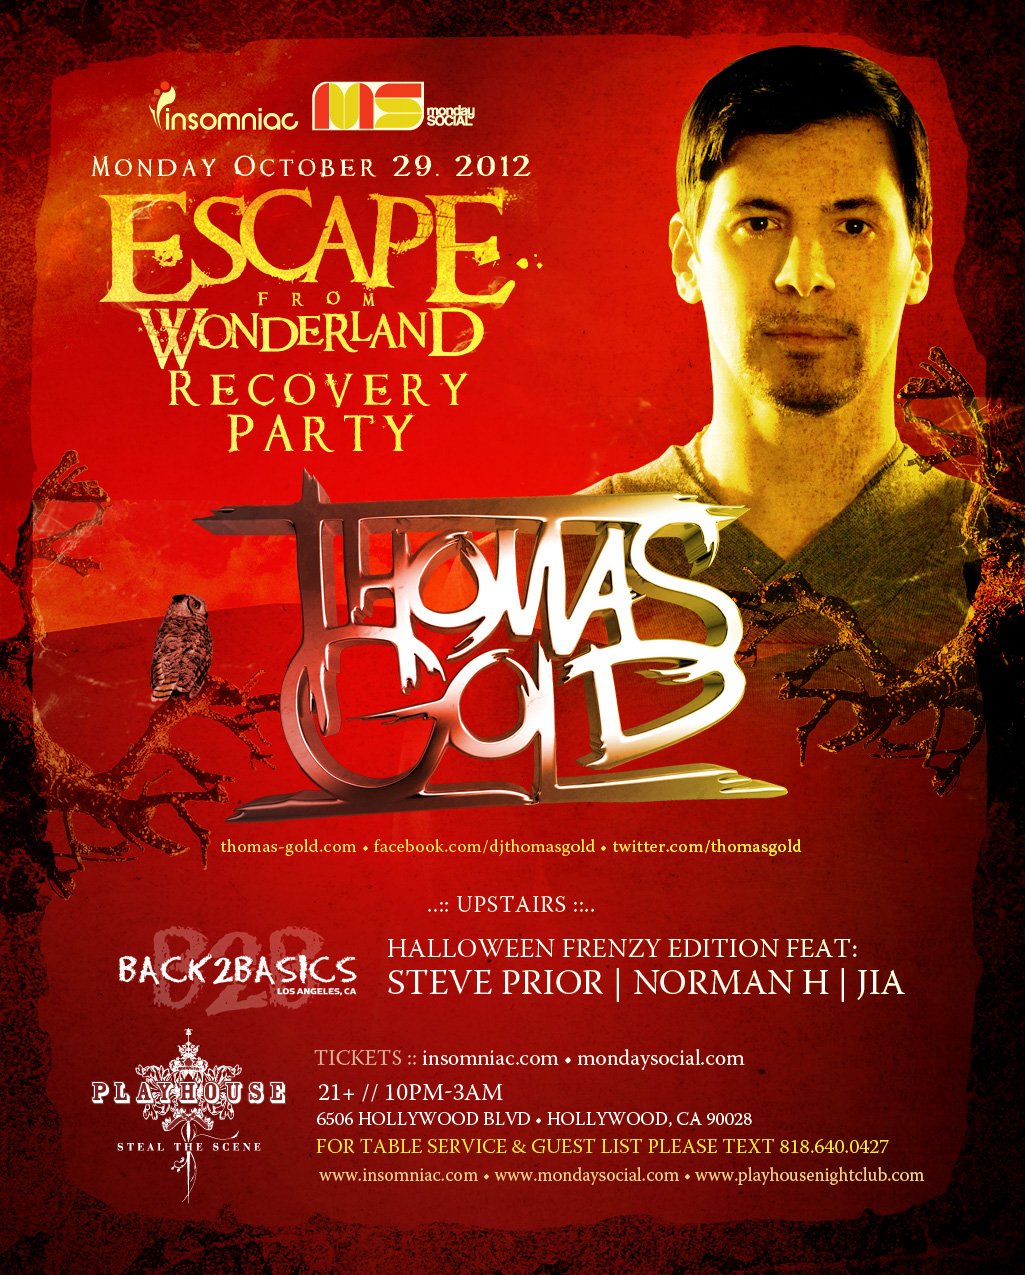 Thomas Gold at Playhouse 10-29-12 - Escape From Wonderland Recovery Party Tickets